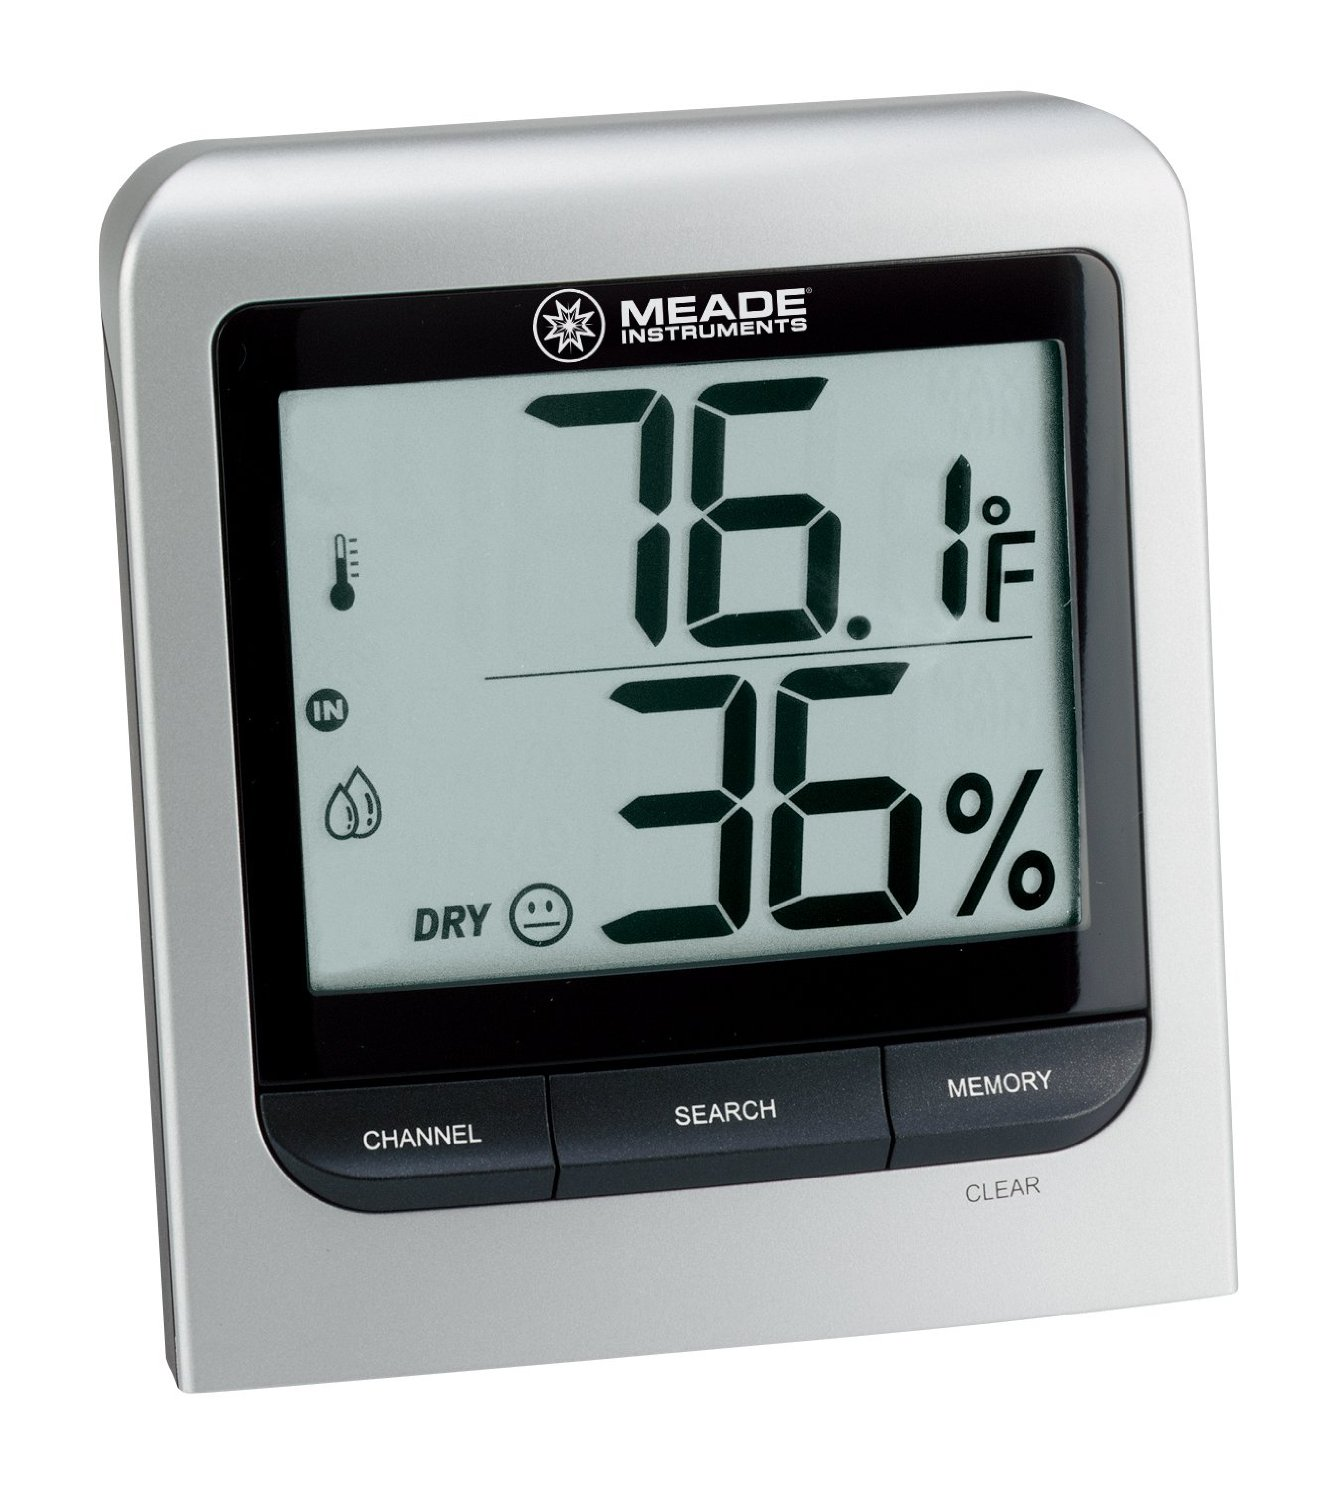 image showing the Meade Instruments TM005X-M Wireless Indoor-Outdoor Thermo Hygrometer